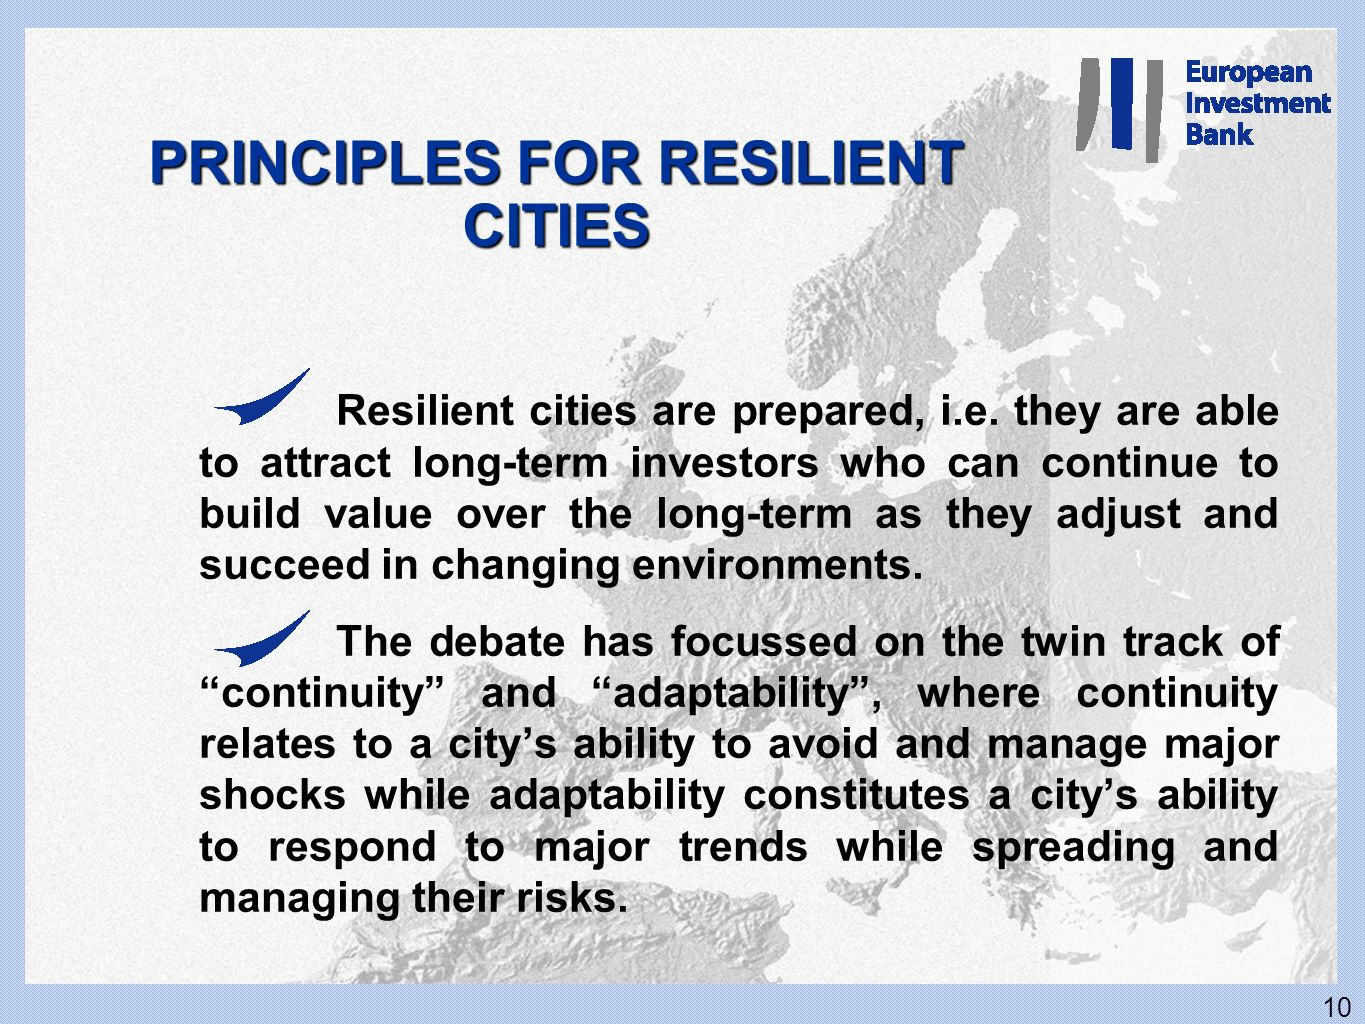 PRINCIPLES FOR RESILIENT CITIES